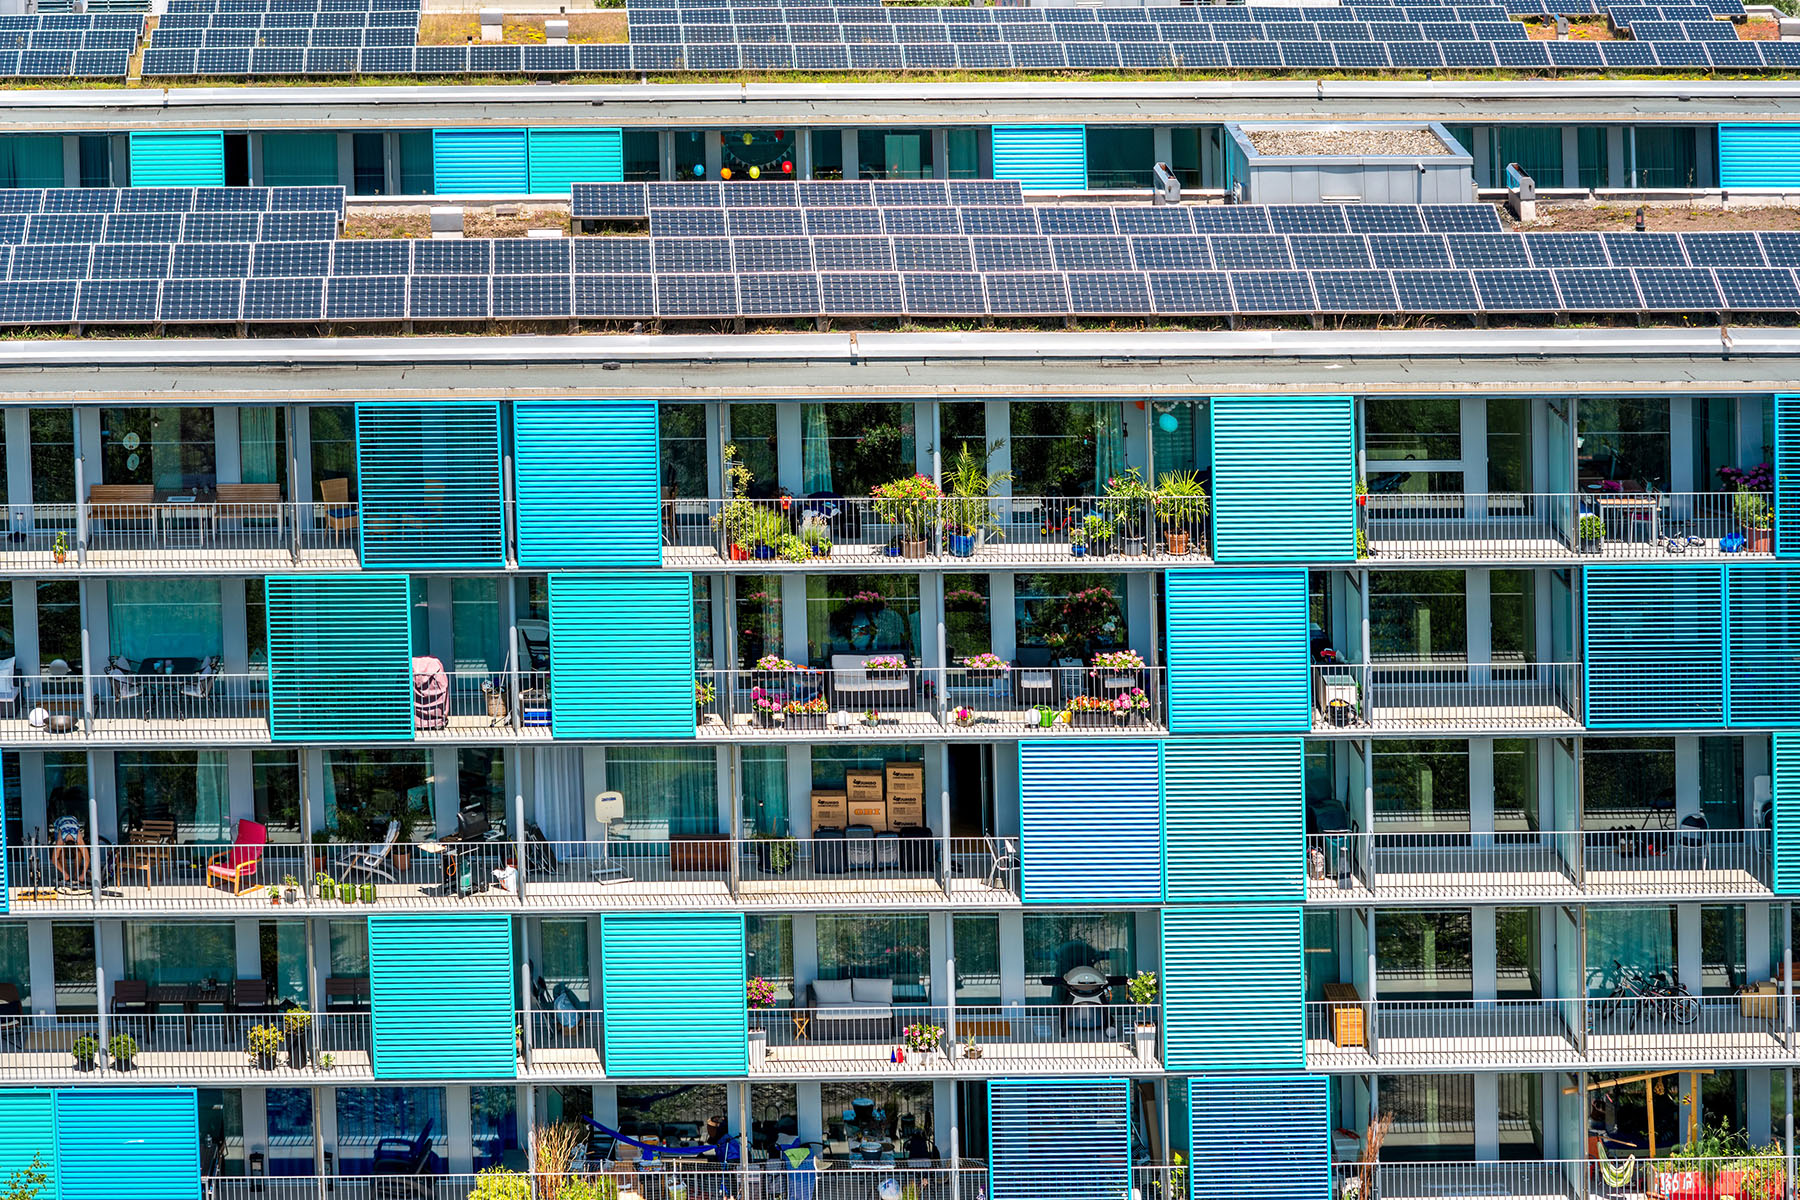 Apartments with solar panels in Zurich